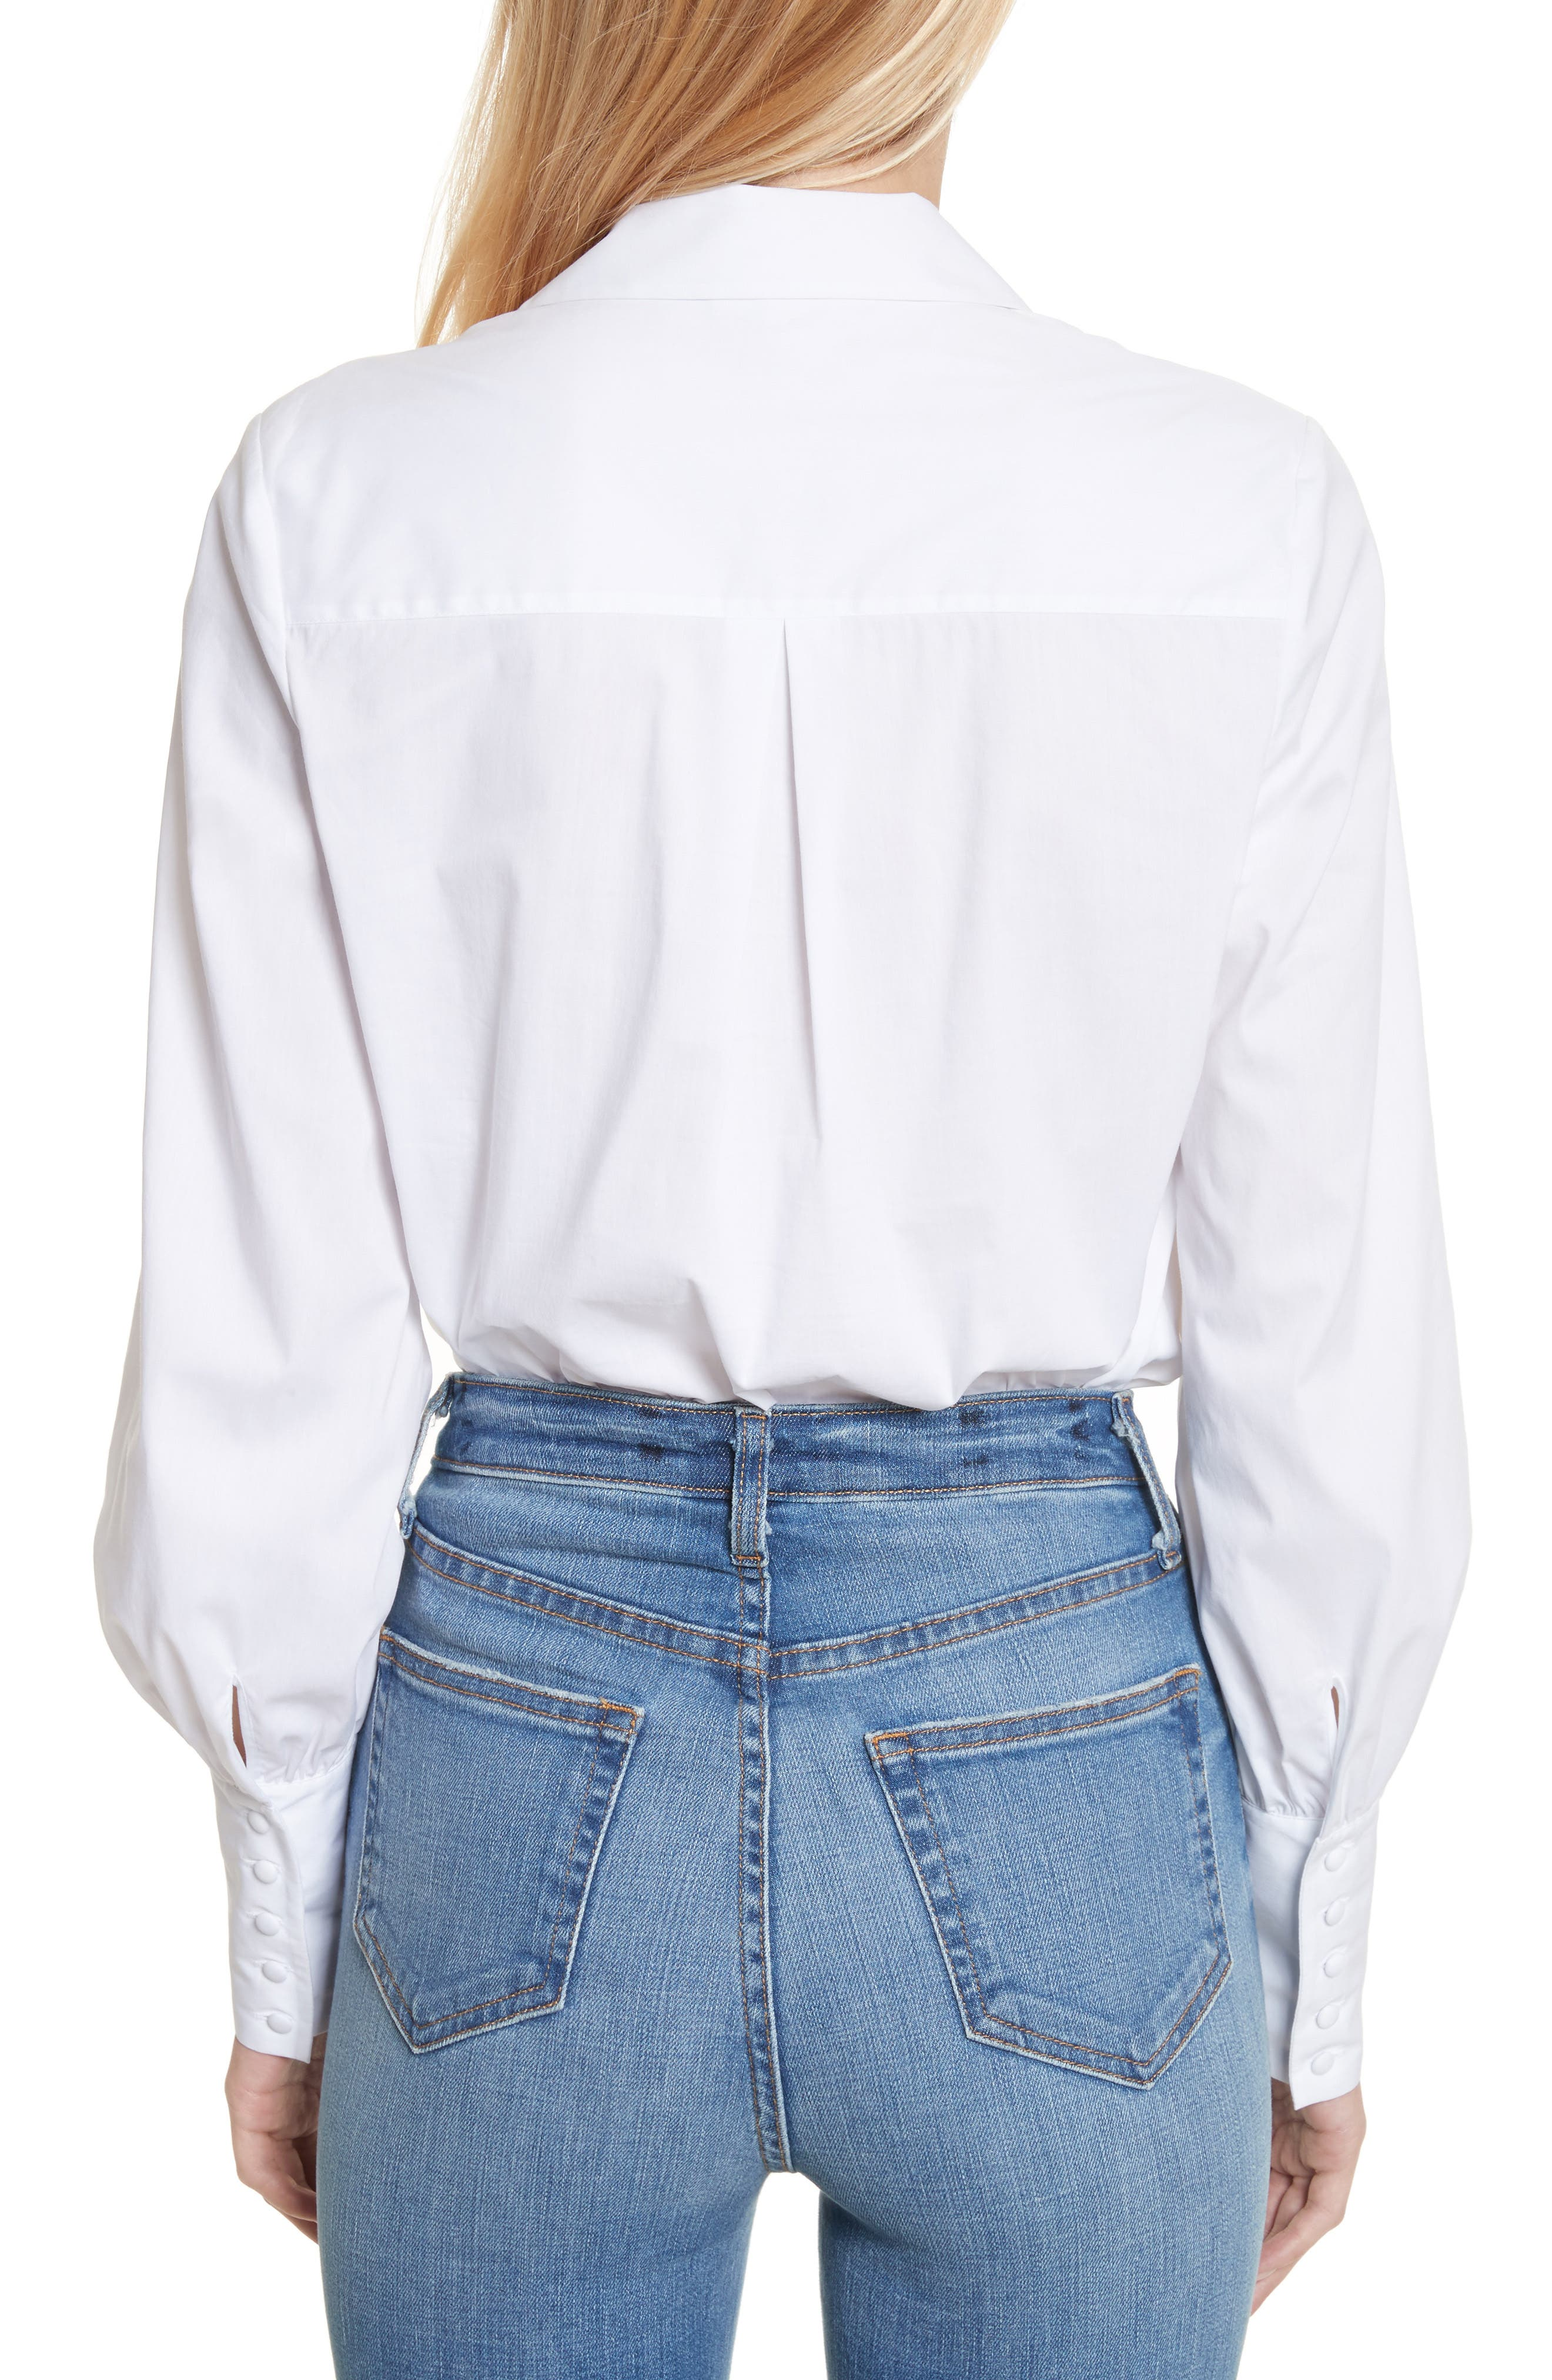 Puff Sleeve Shirt,                             Alternate thumbnail 2, color,                             White